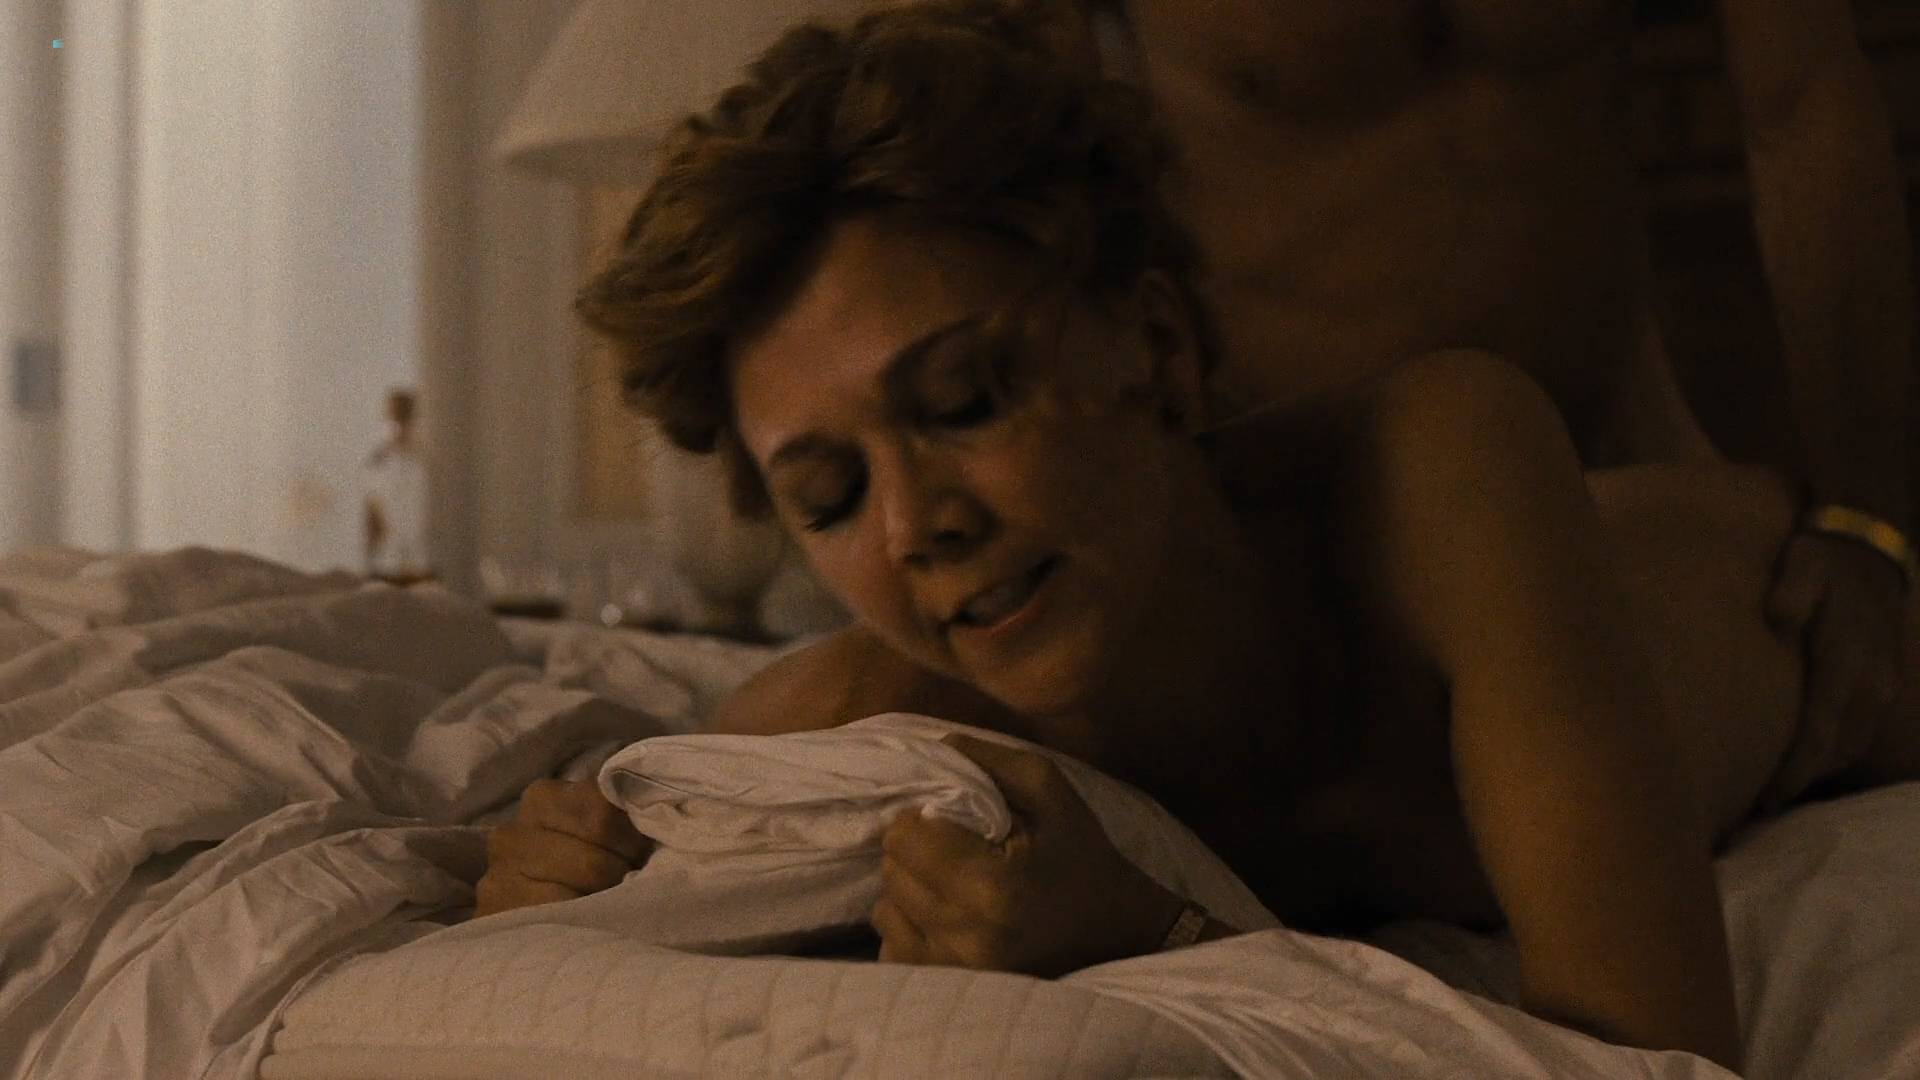 Maggie gyllenhaal sex scene in the deuce scandalplanetcom